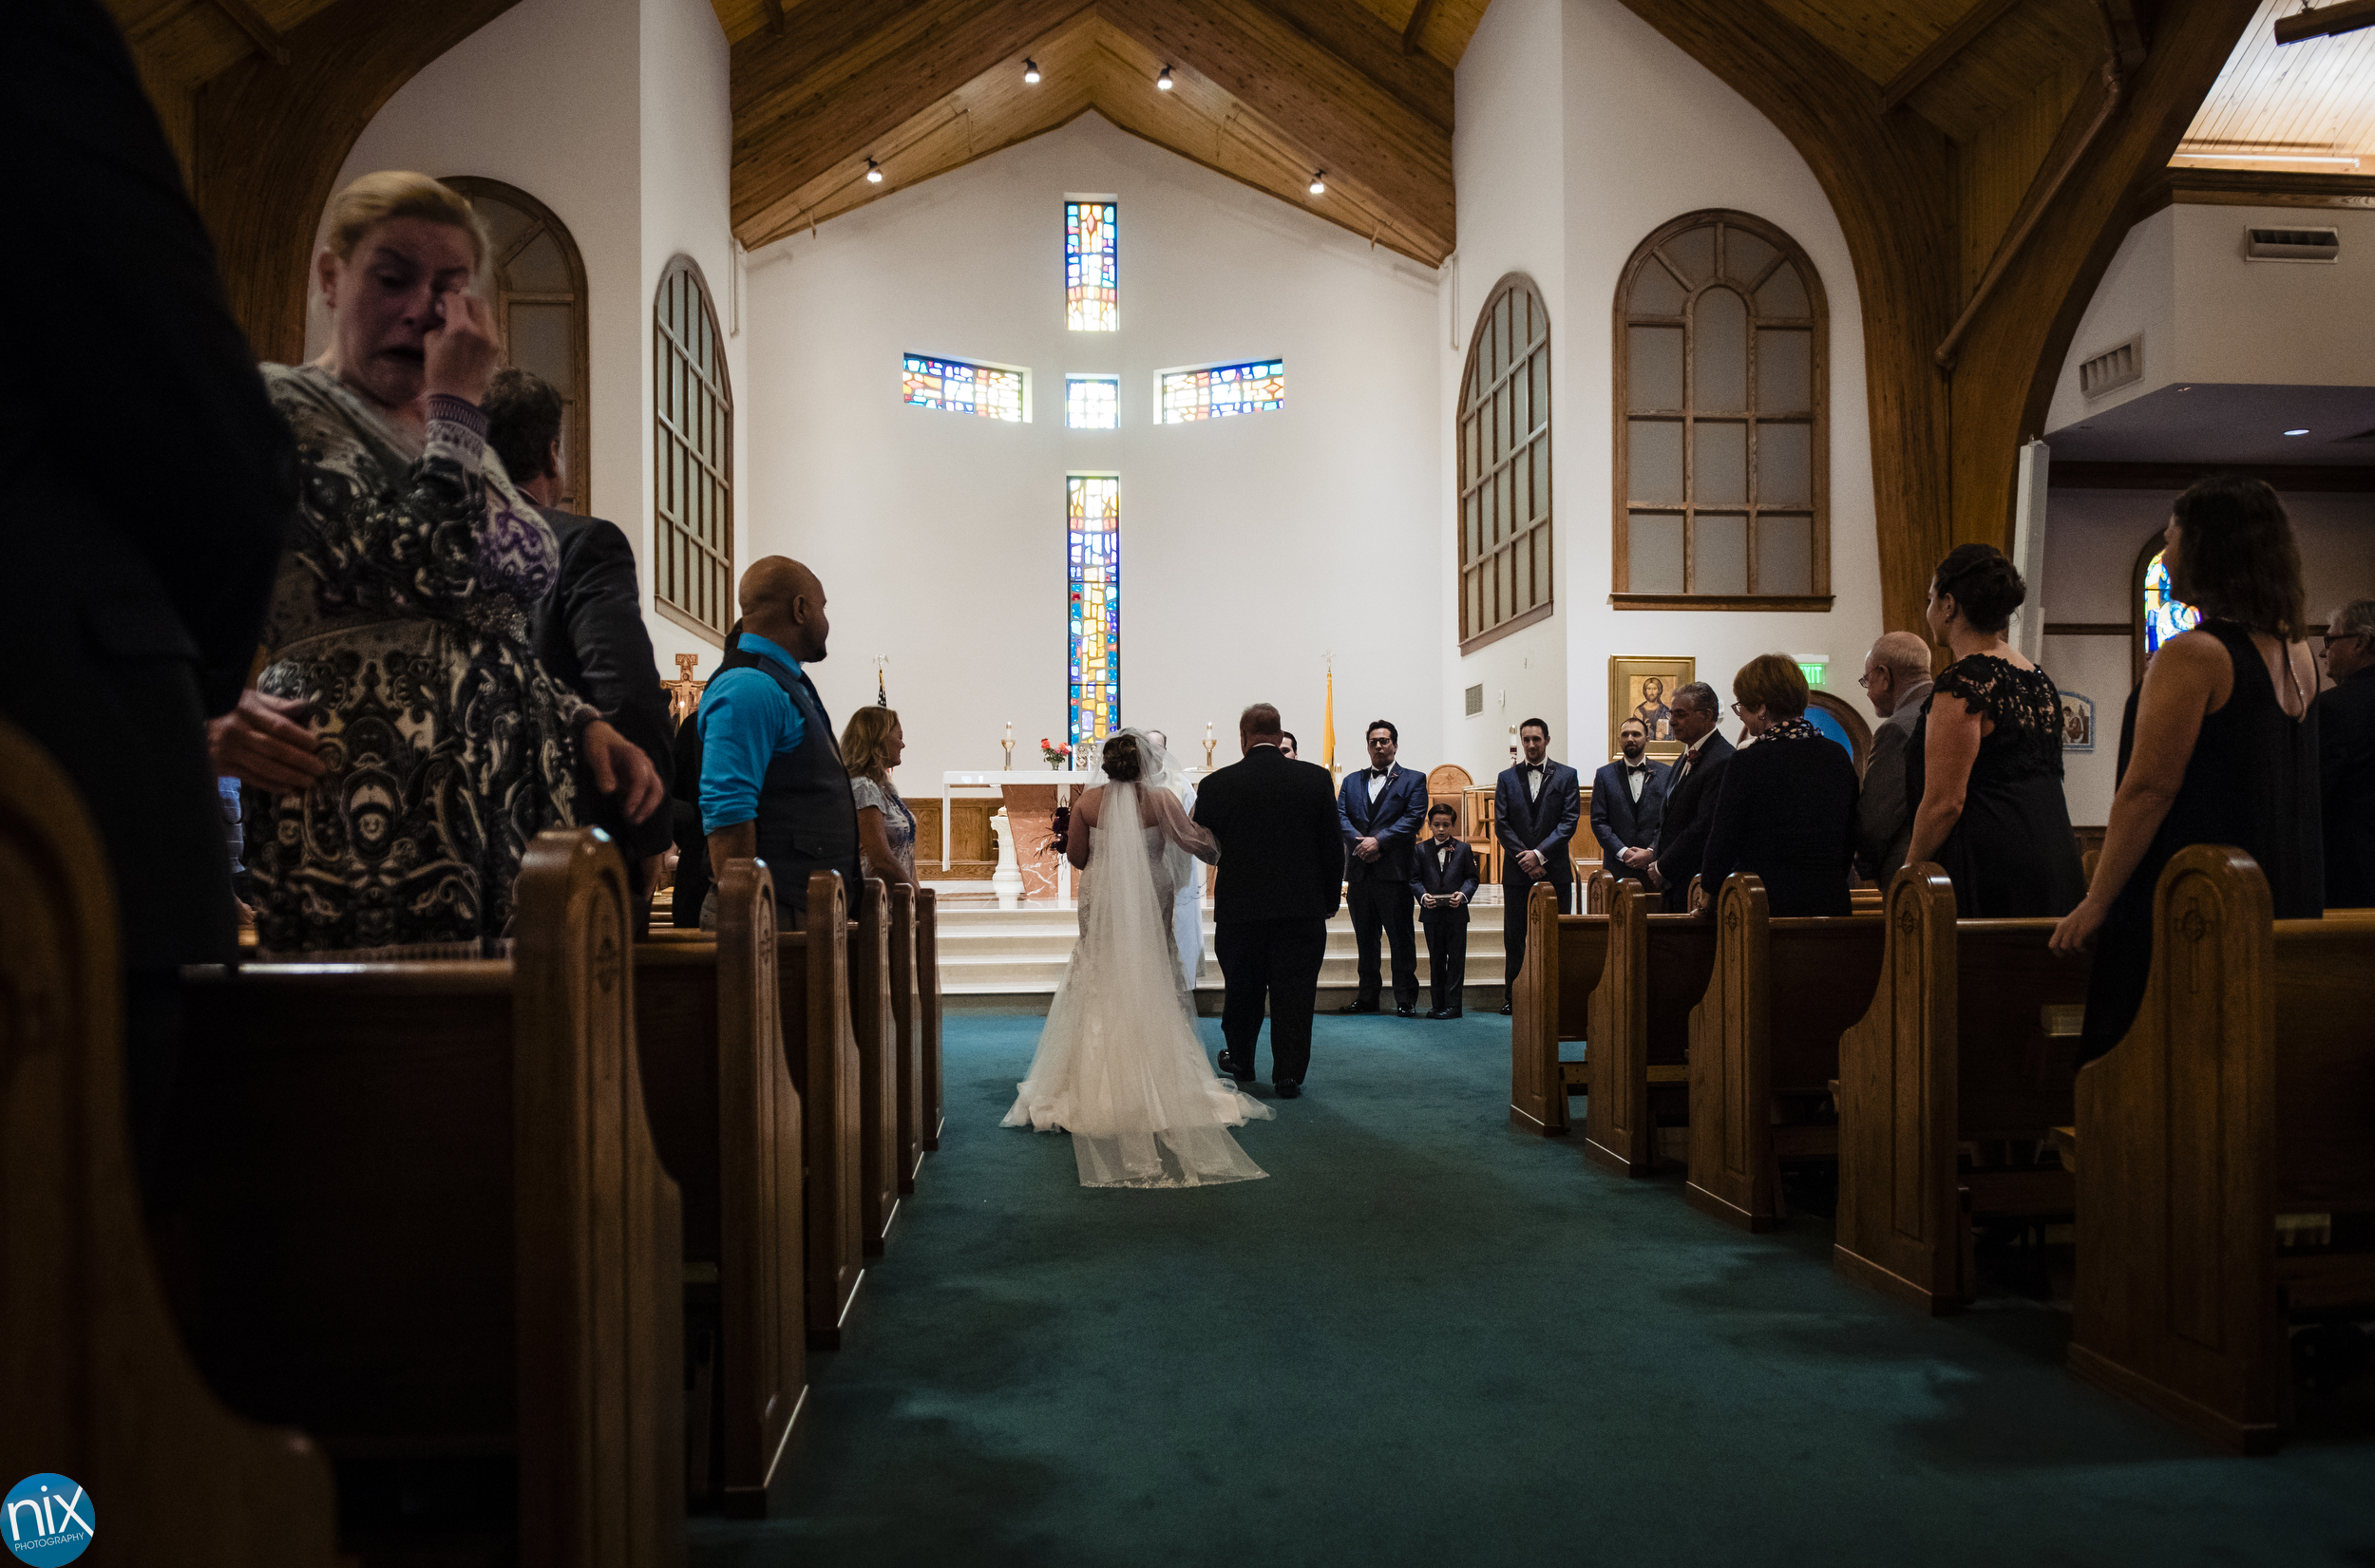 St Philip Neri Catholic Church wedding ceremony.jpg